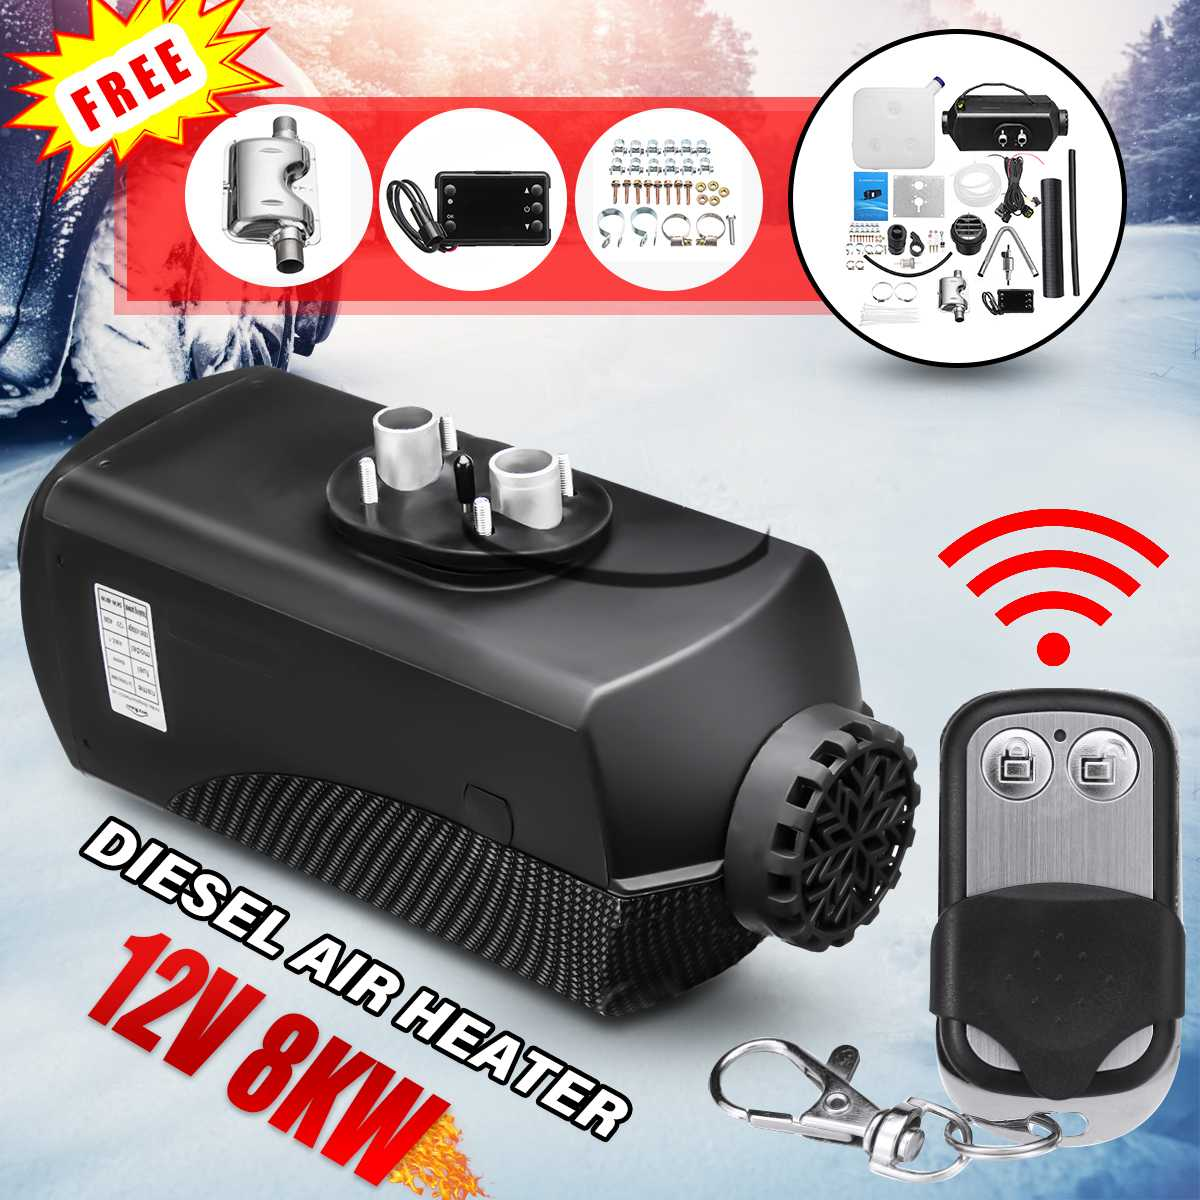 12V 8000W 8KW Diesels Fuel Air Heater W/Remote Control LCD Monitor Thermostat For Truck Boat Car Auto Trailer Inside Air Warming